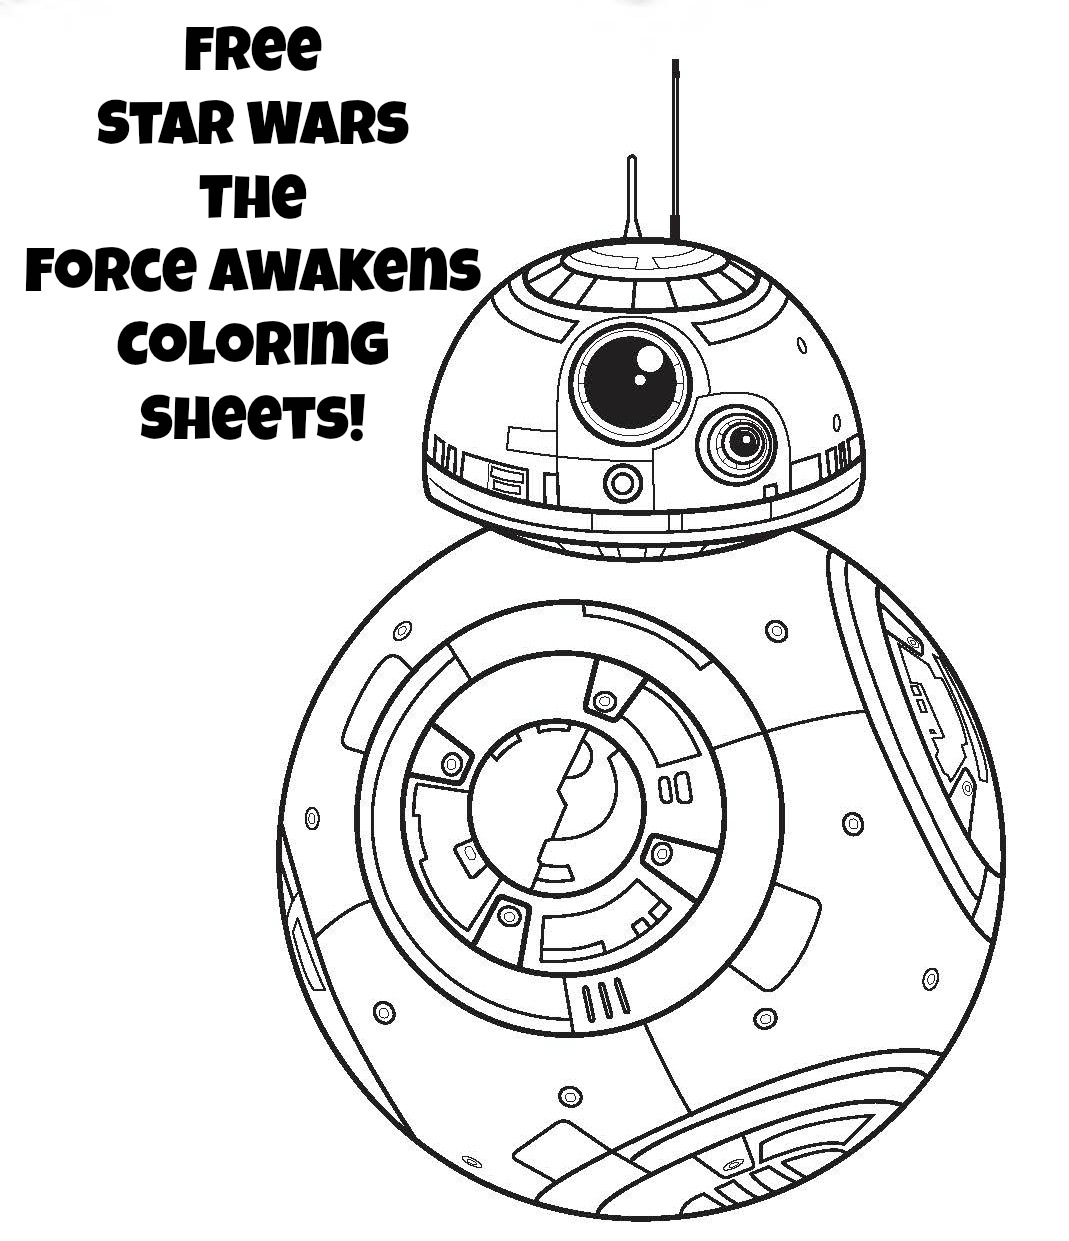 star wars coloring images star wars to color for kids star wars kids coloring pages wars images star coloring